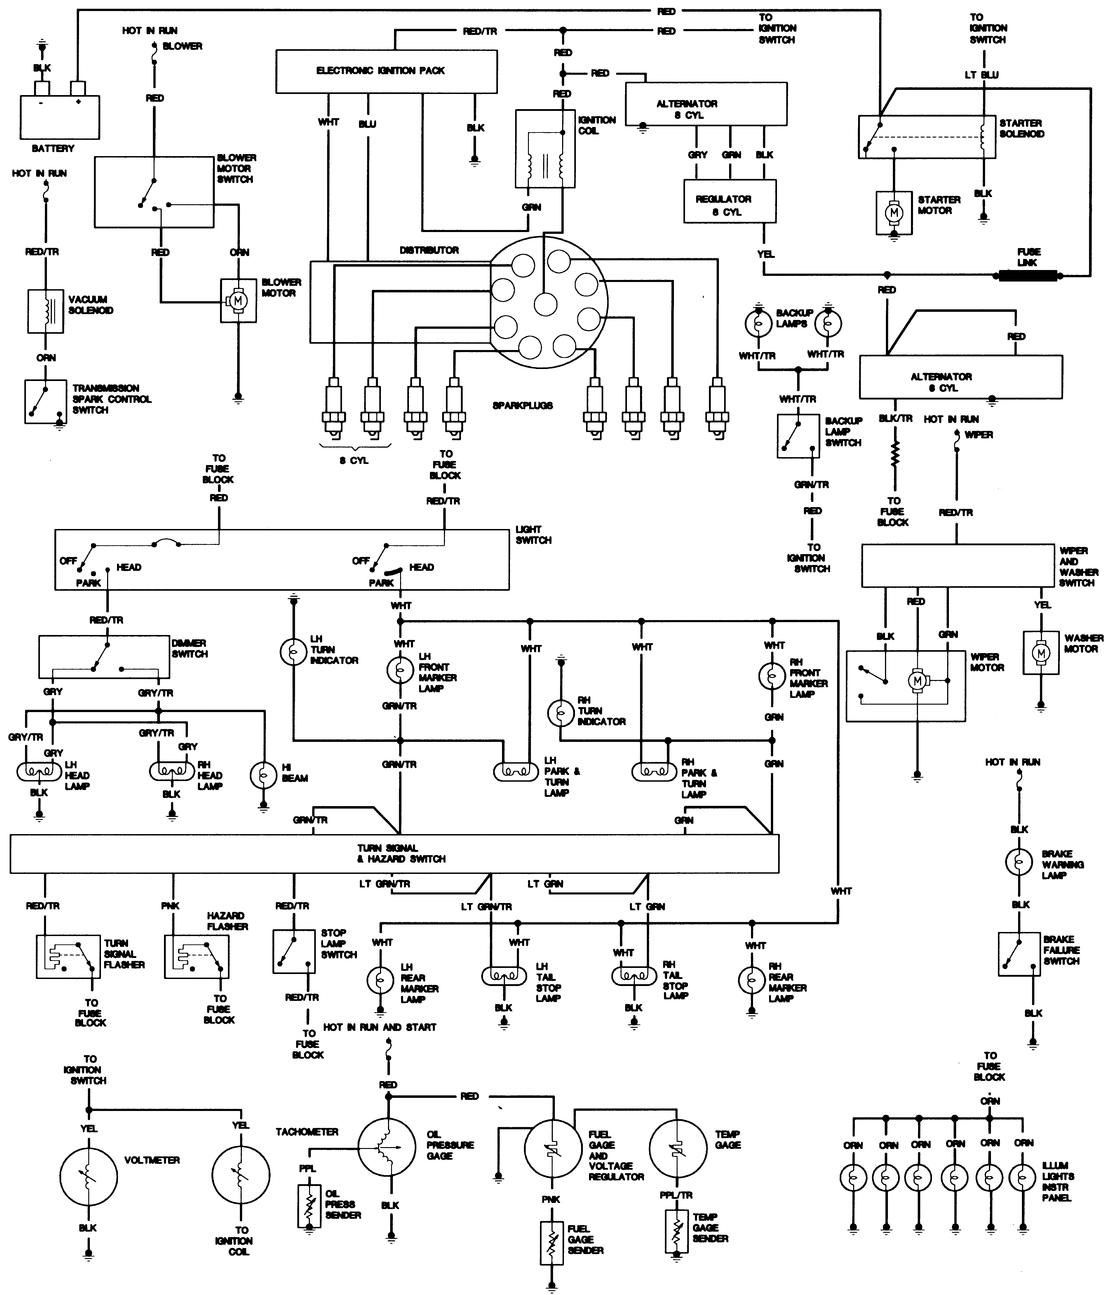 79 Jeep Cj7 Wiring Diagram | Wiring Diagram  Jeep Wiring Diagram on 86 mustang wiring diagram, 86 chevy wiring diagram, 86 corvette wiring diagram, 86 bronco wiring diagram, 86 camaro wiring diagram, 86 ford wiring diagram,